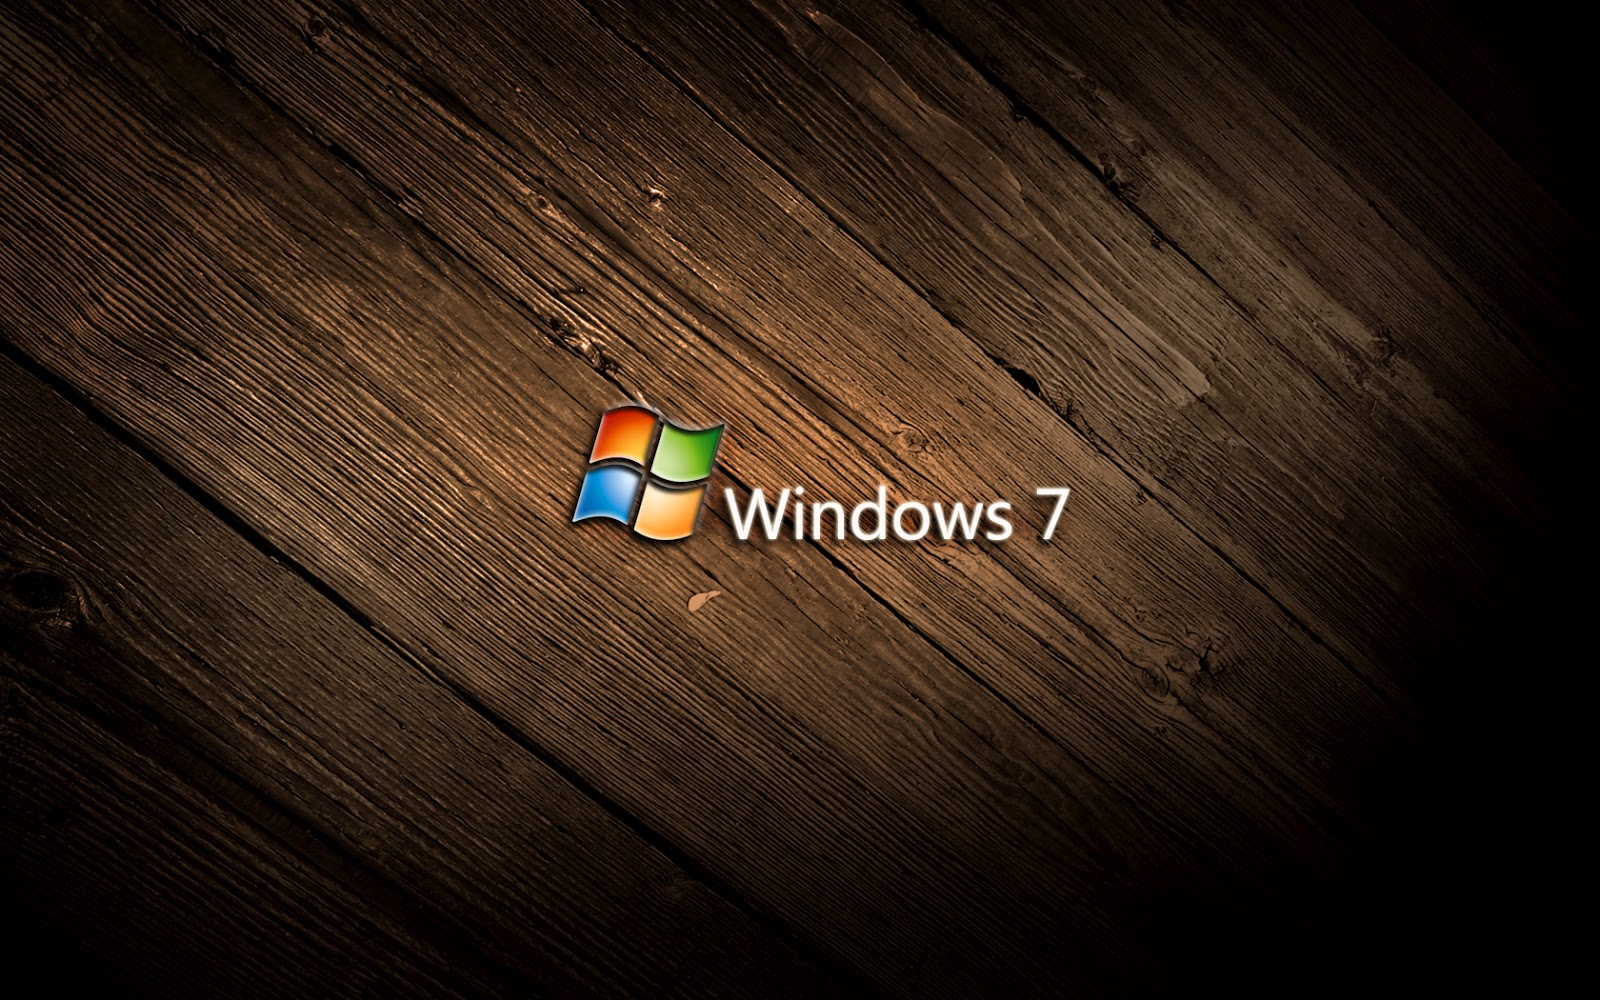 Windows 7 HD Wallpapers - a | HD Wallpapers